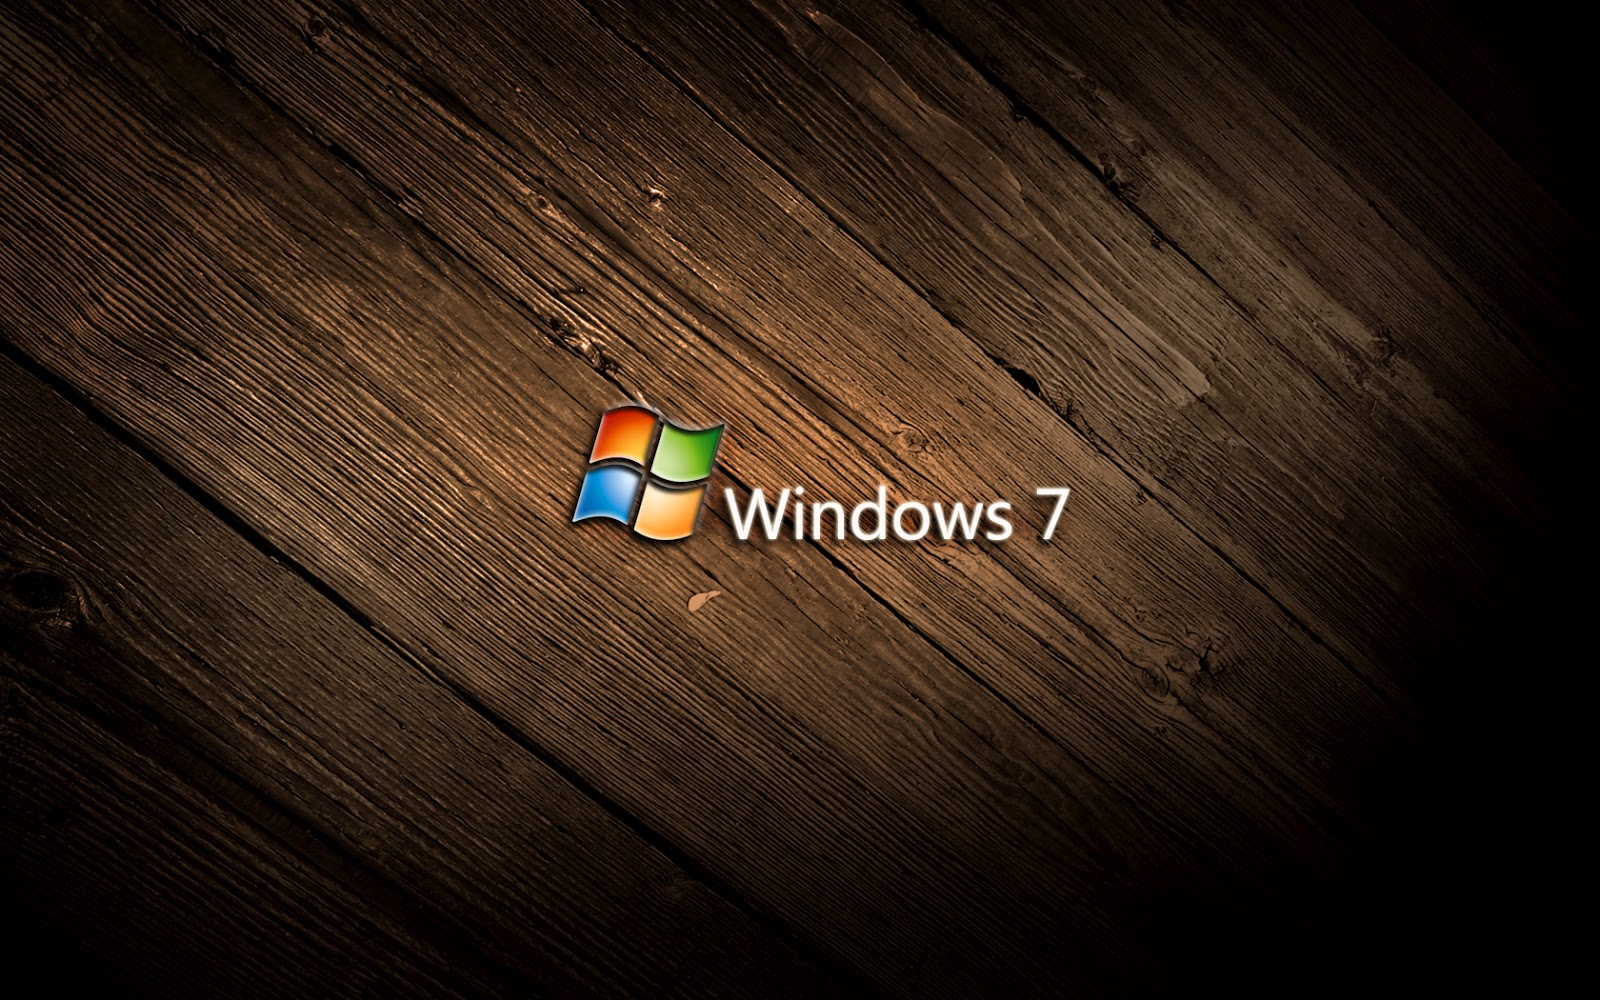 Windows 7 HD Wallpapers - a | HD Wallpapers